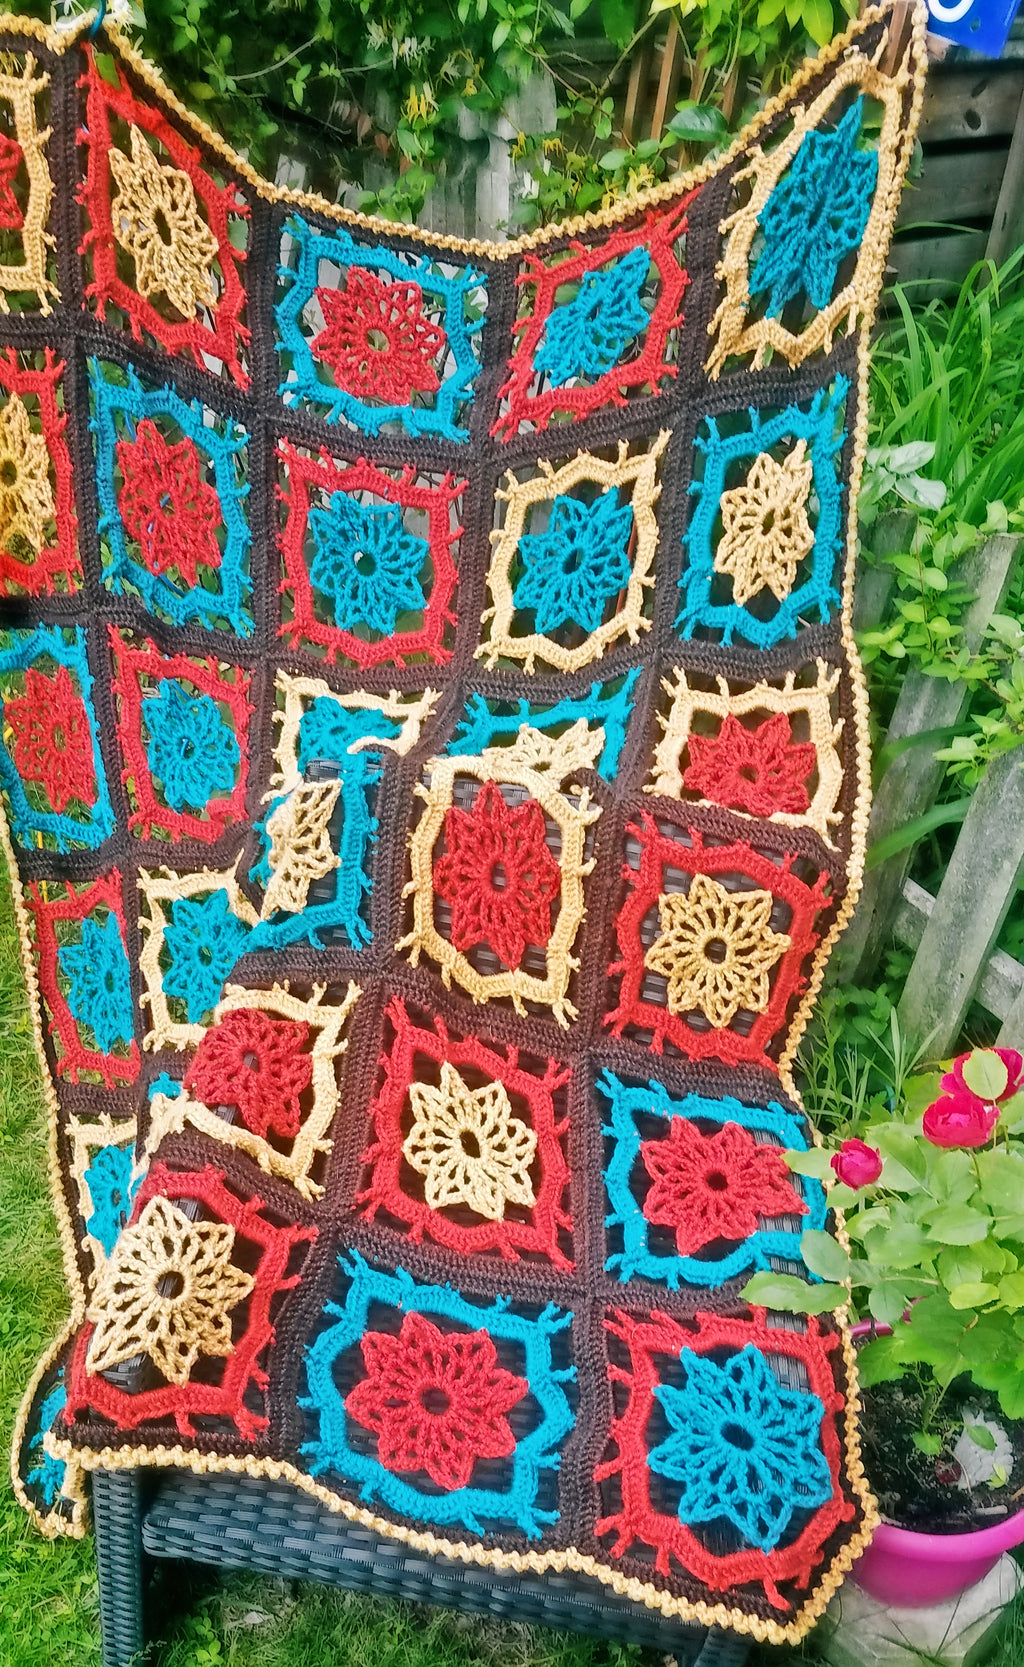 Cardamom and Coriander Afghan - Designed by Rose Tussing